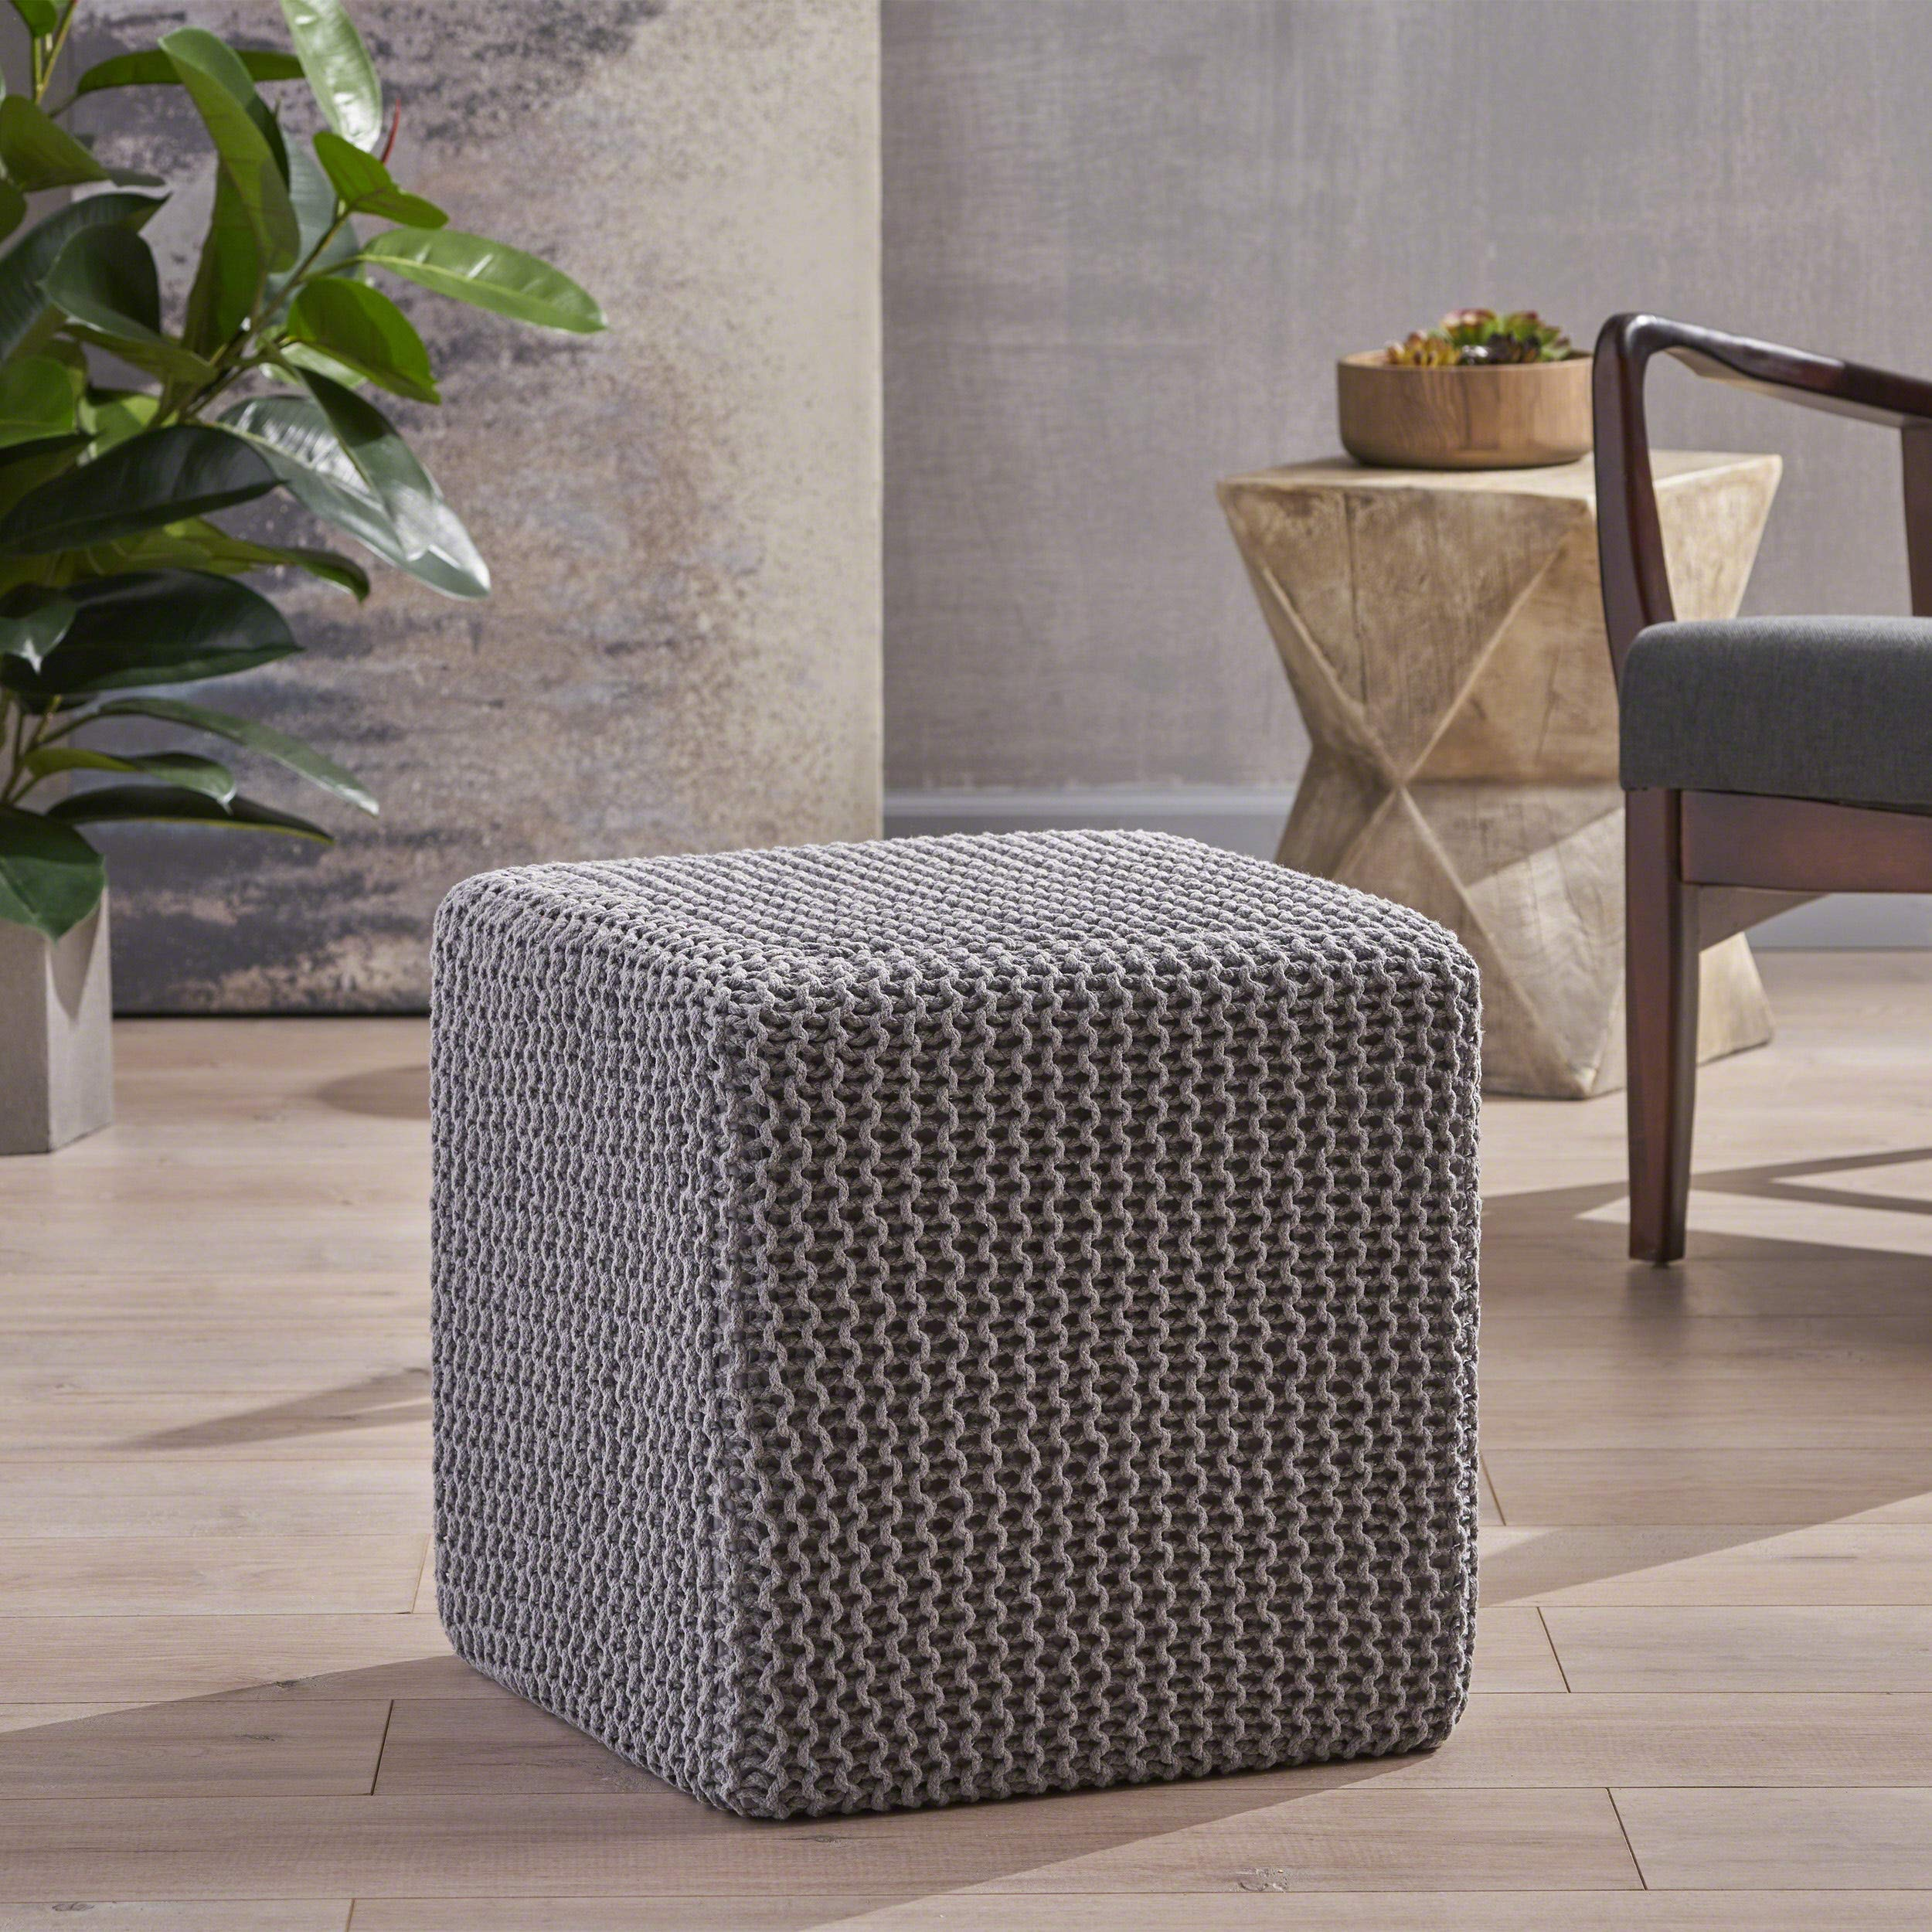 Christopher Knight Home Scott Knitted Foot Stool, Light Gray by Christopher Knight Home